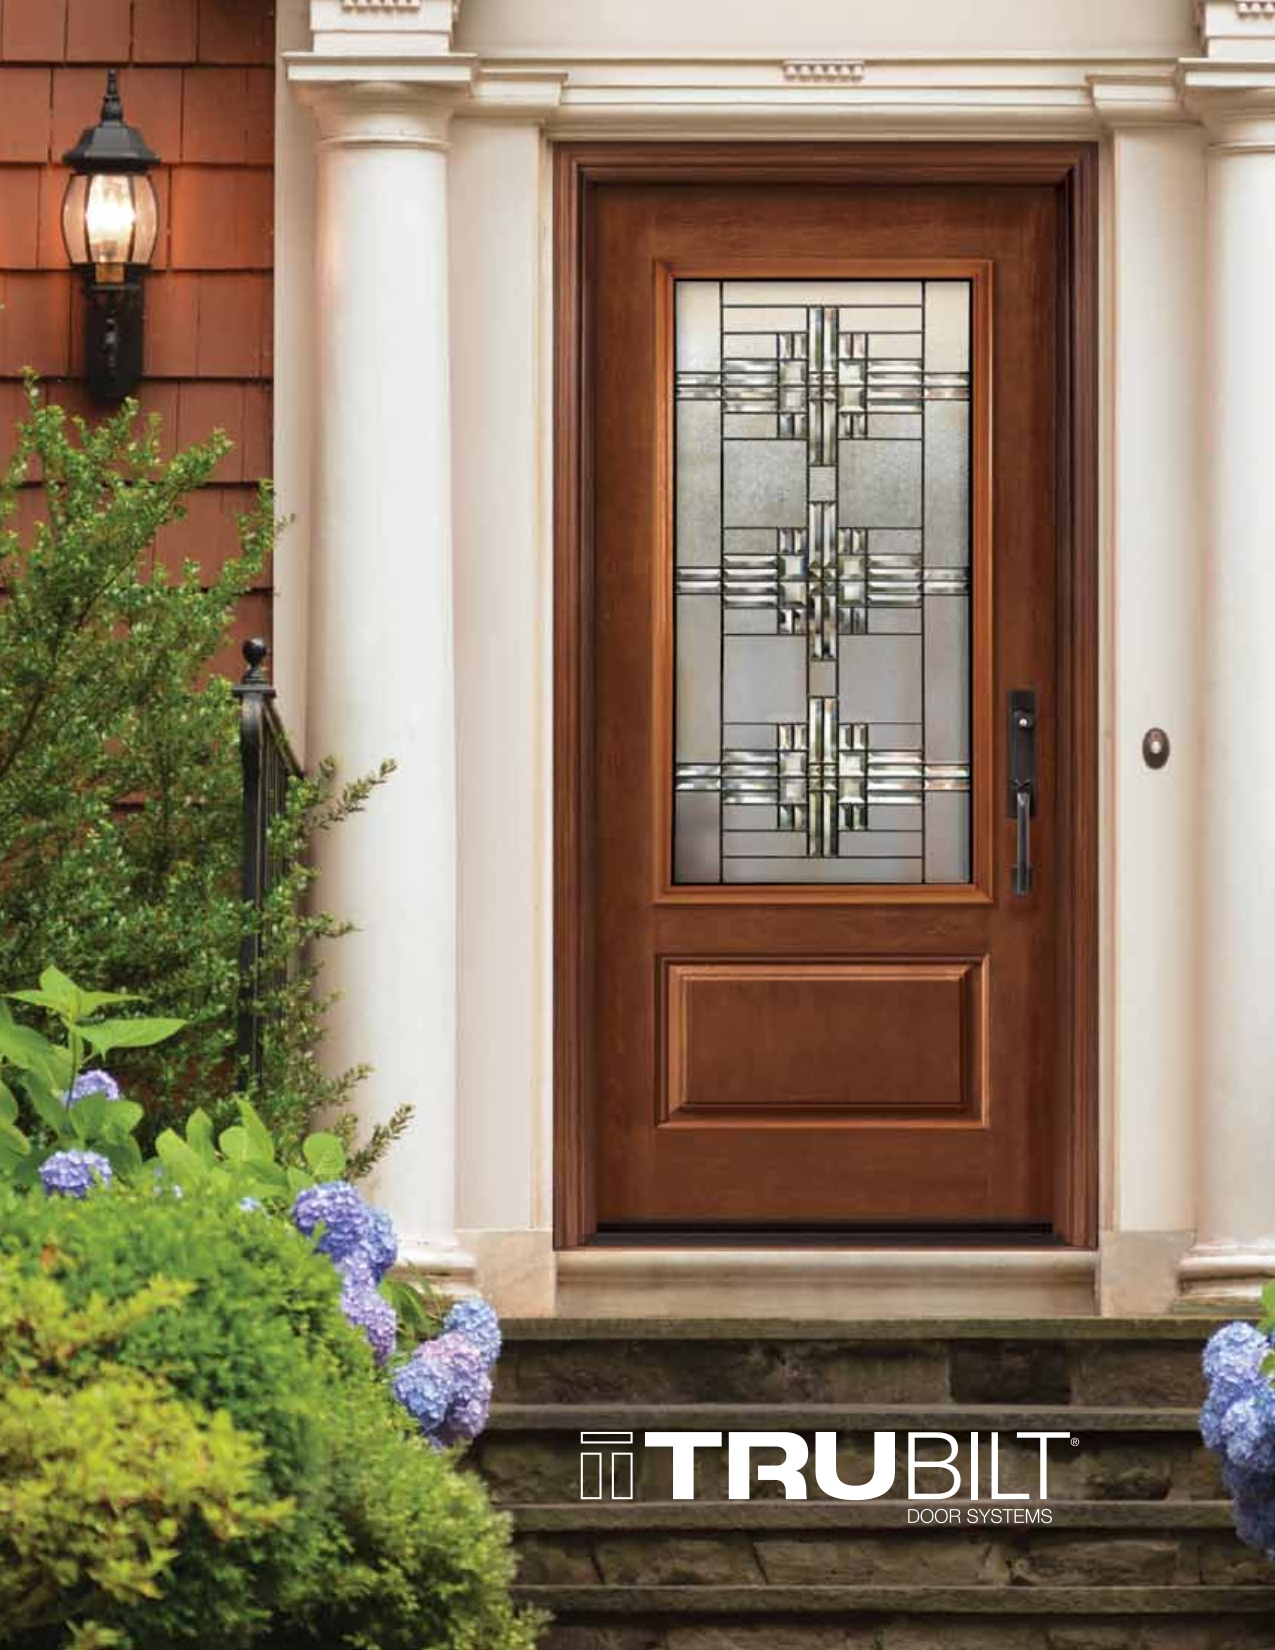 1650 #6B3C27 Steel Fiberglass Front Door Systems Trutech 001 EuroStar Windows And  save image Steel Front Doors 40871275